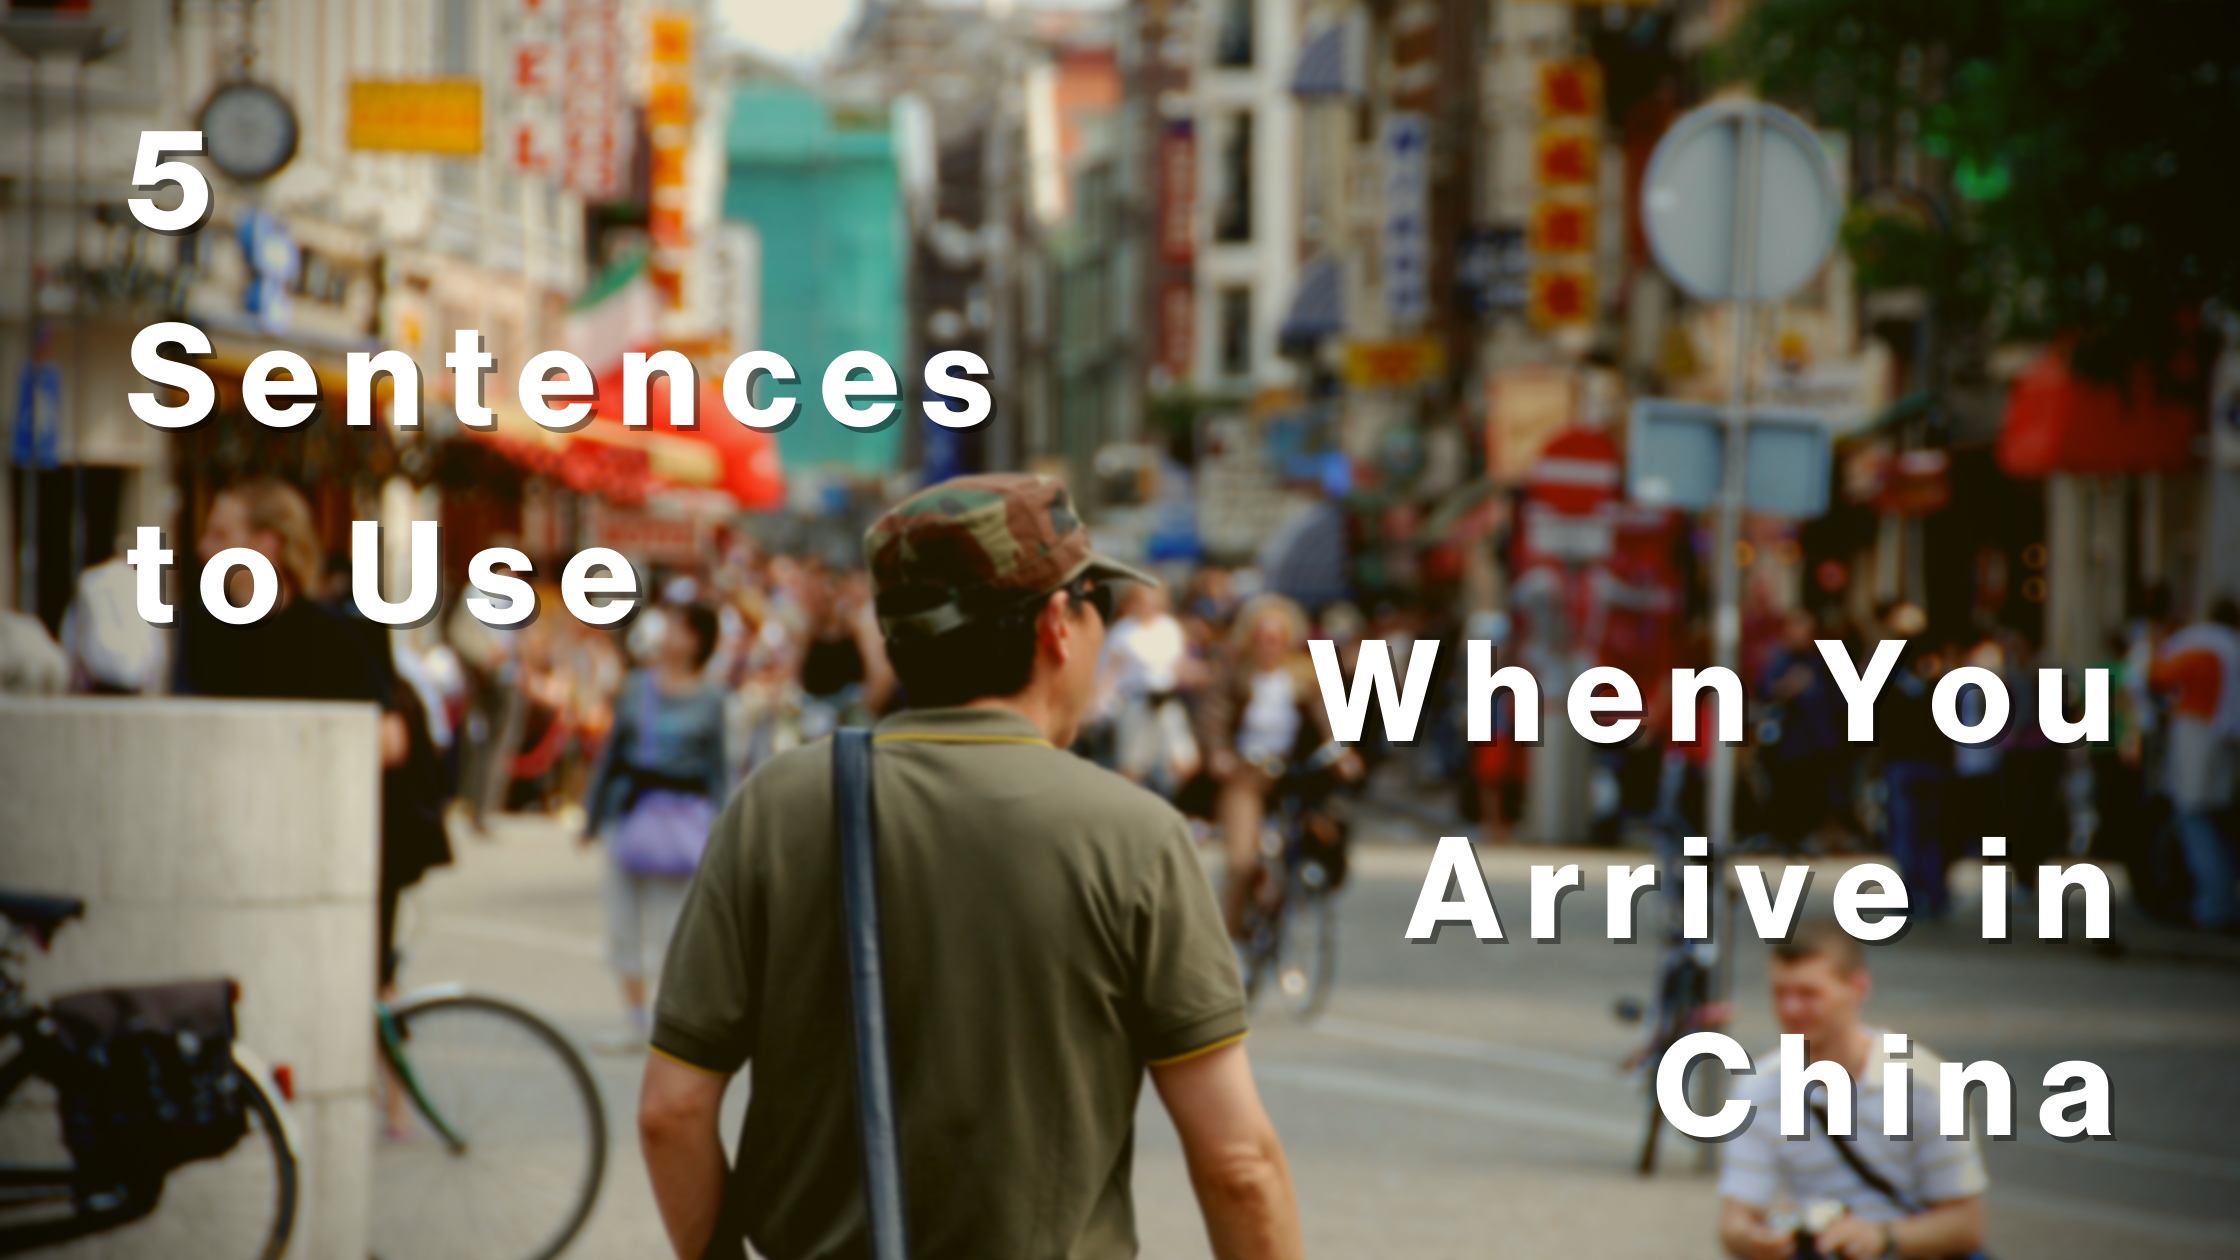 5 sentences to use when you arrive in China